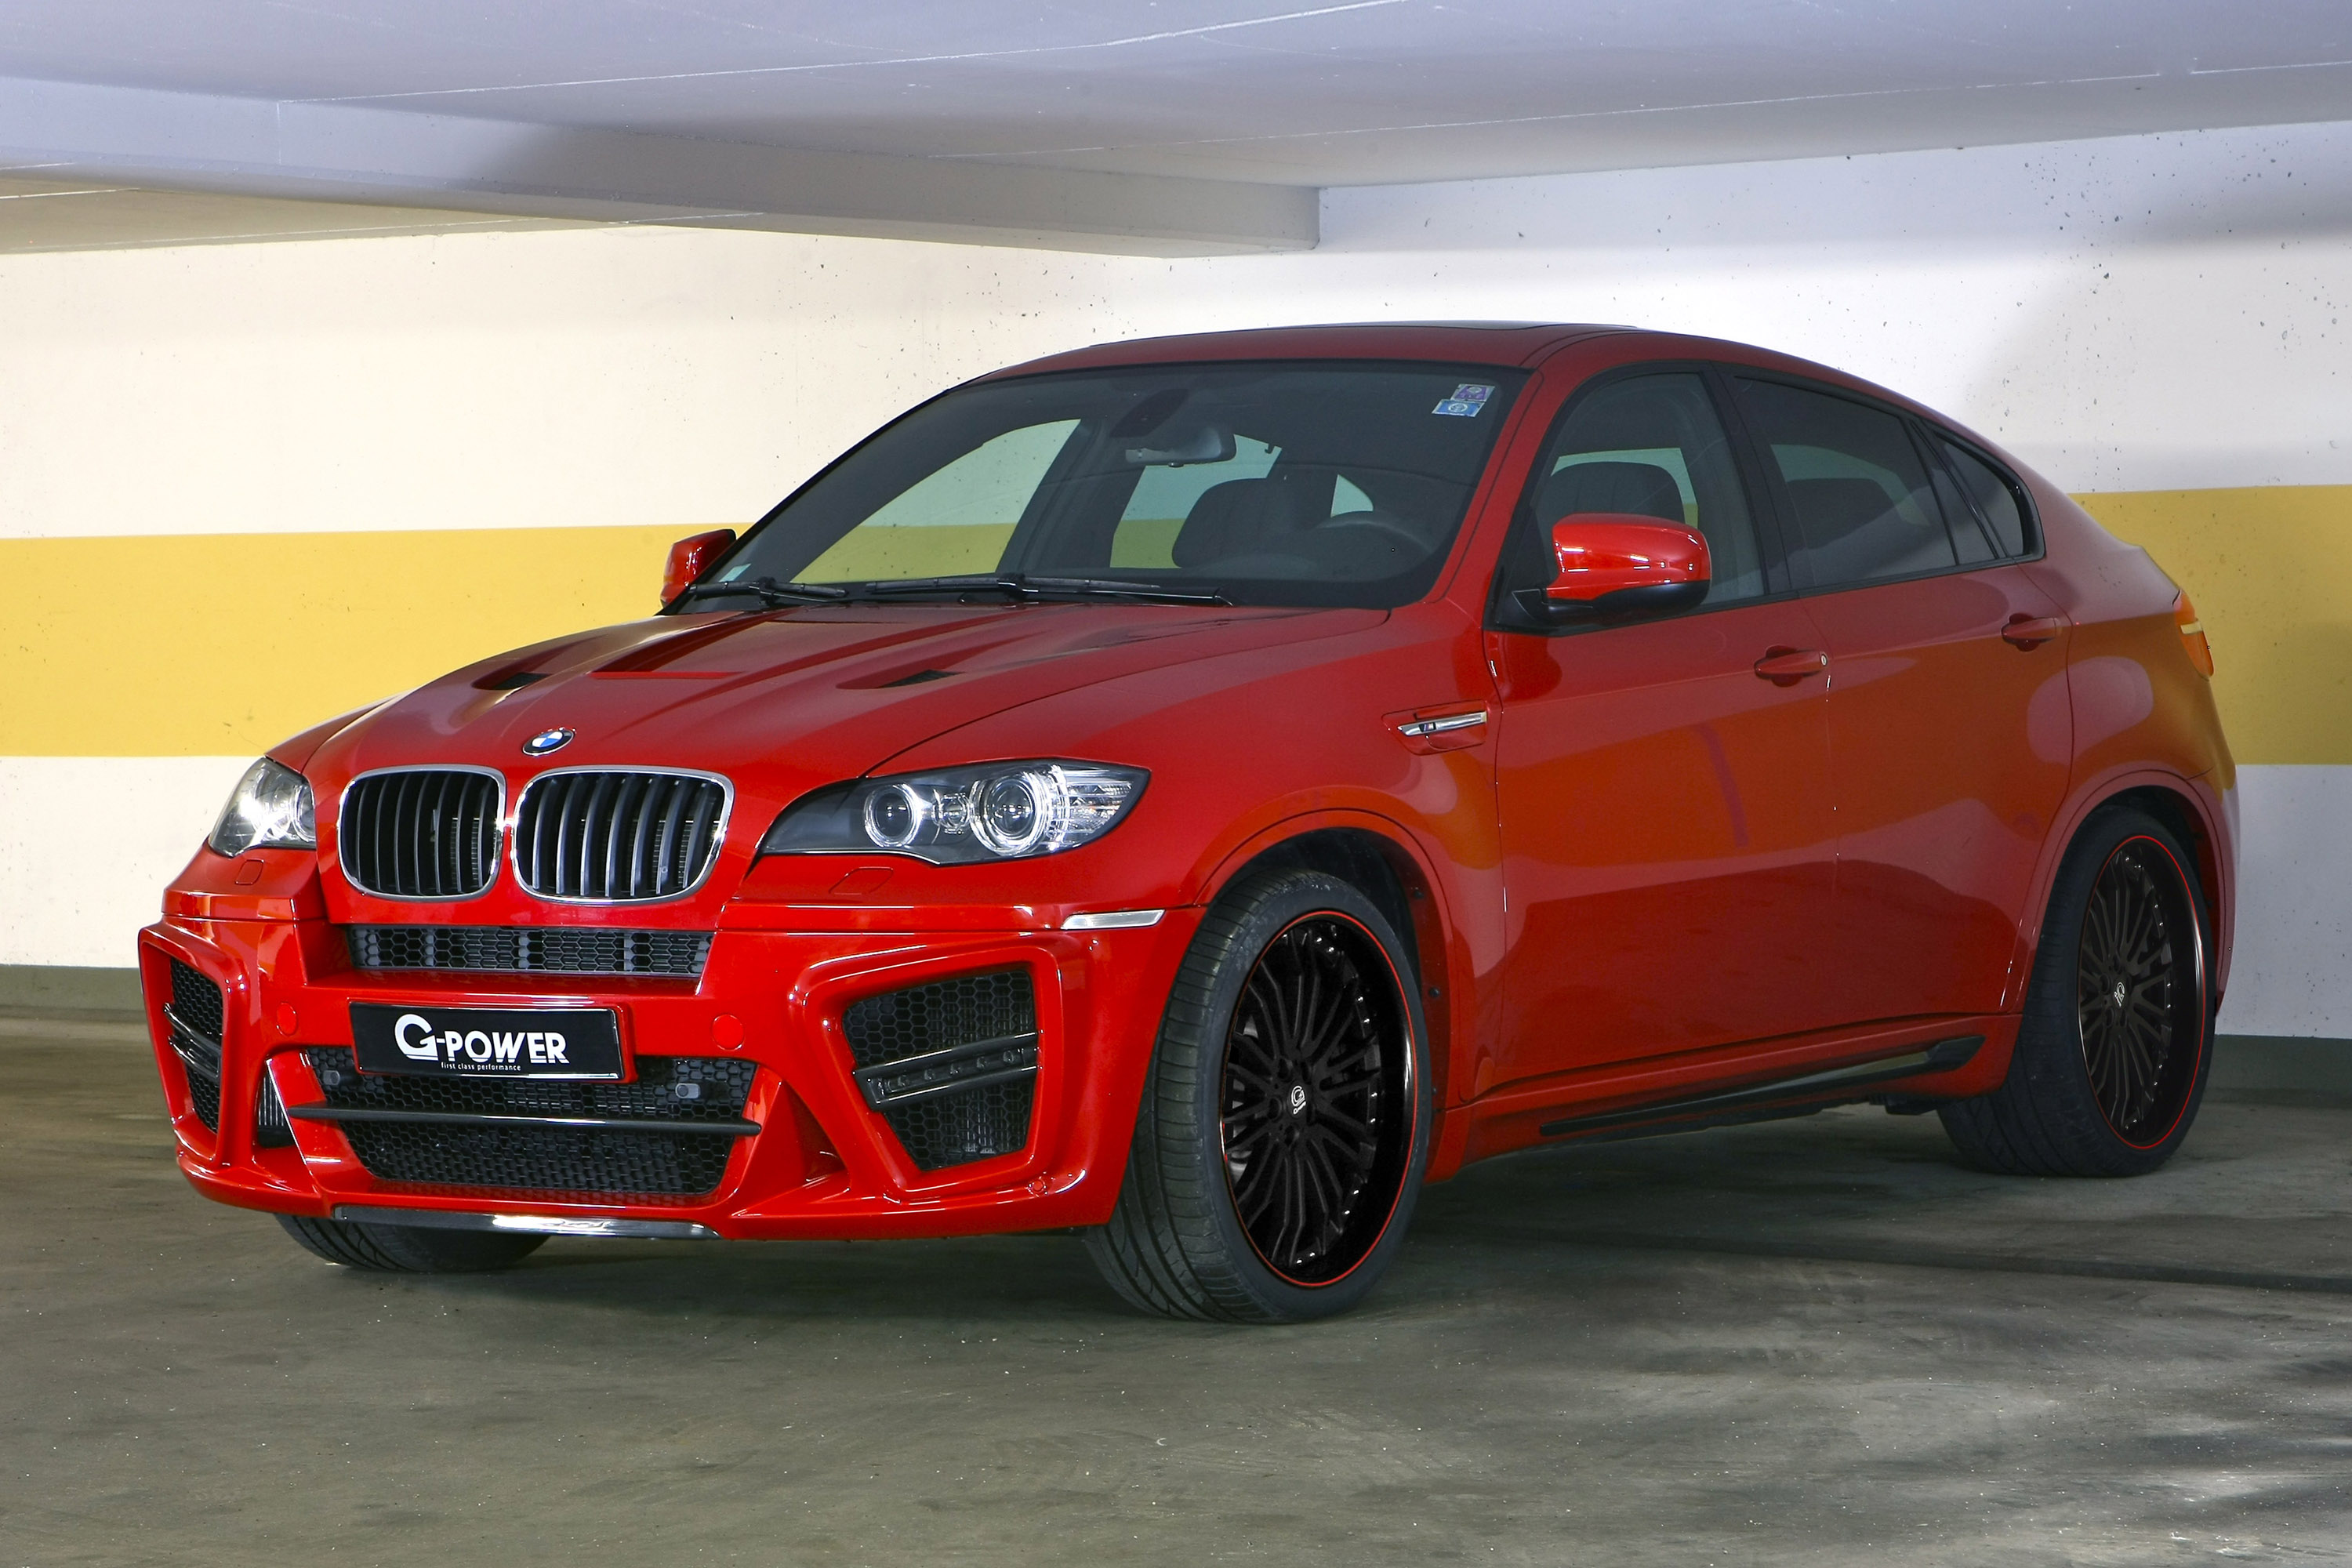 2011 g power bmw x6m typhoon s dark cars wallpapers. Black Bedroom Furniture Sets. Home Design Ideas